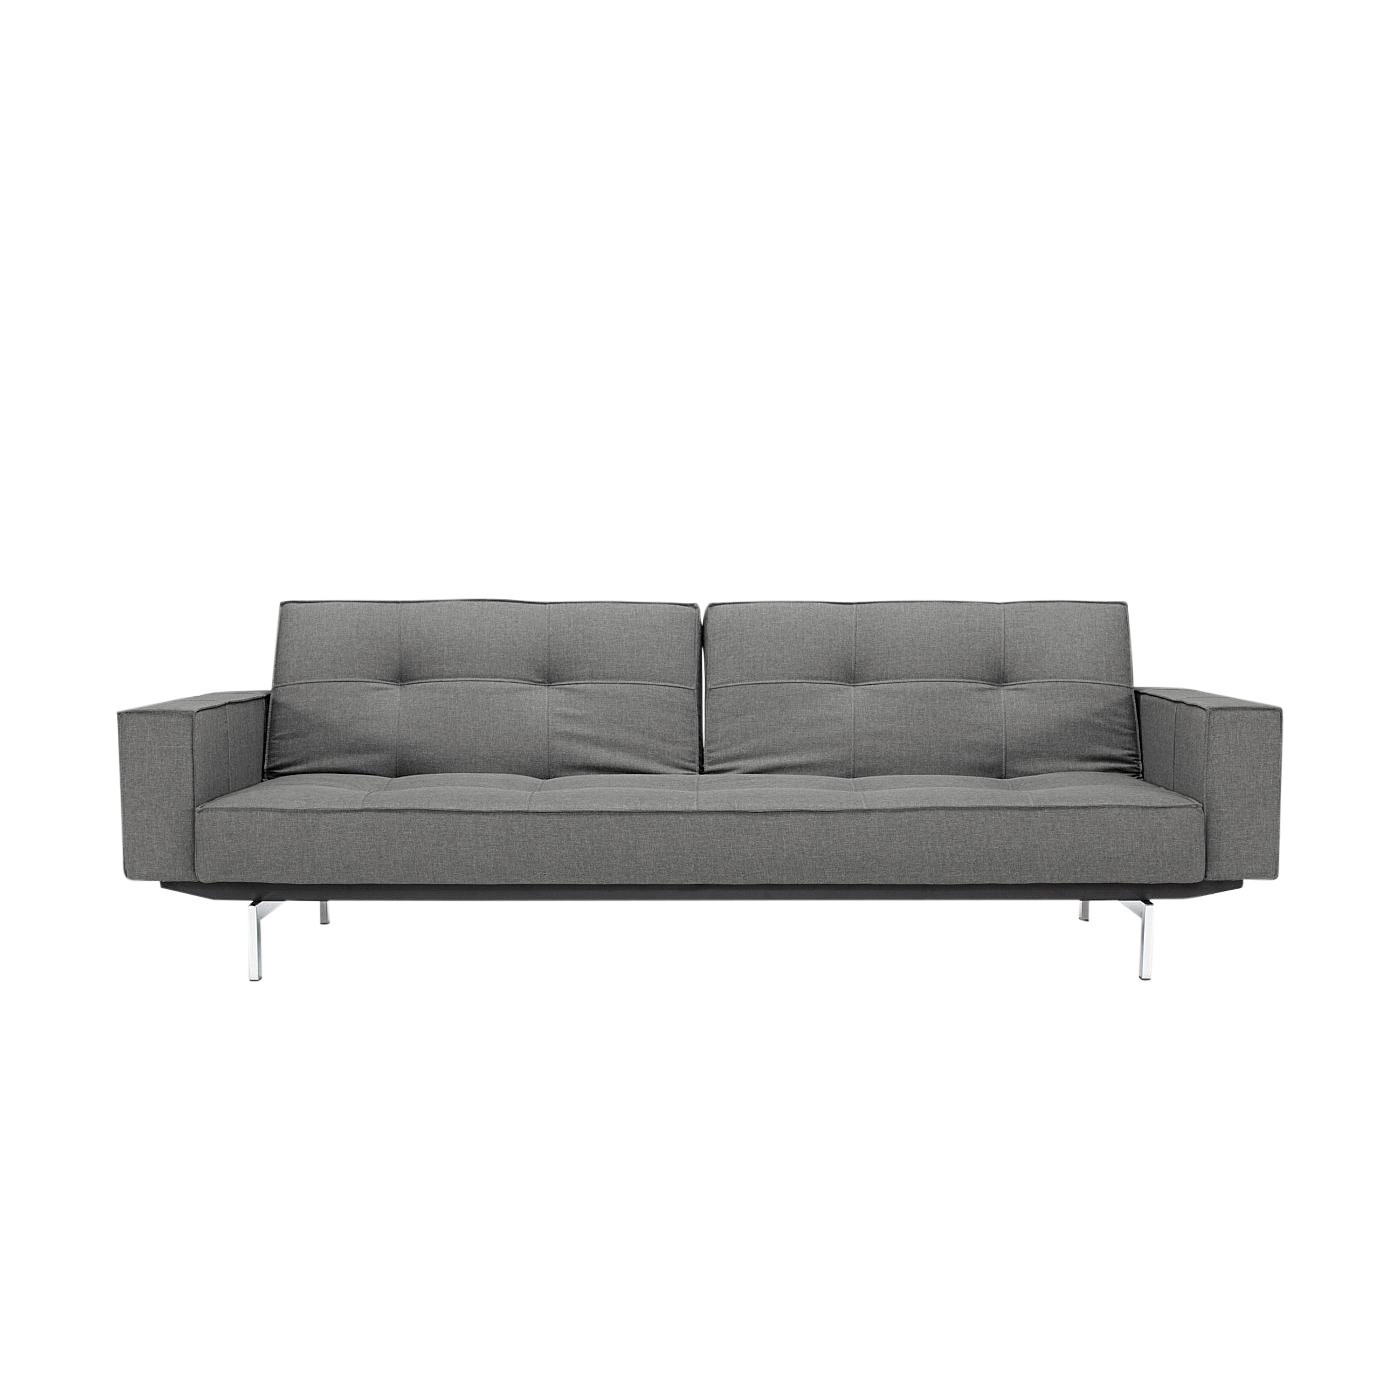 Sofa Grau Splitback Sofa Bed With Armrests